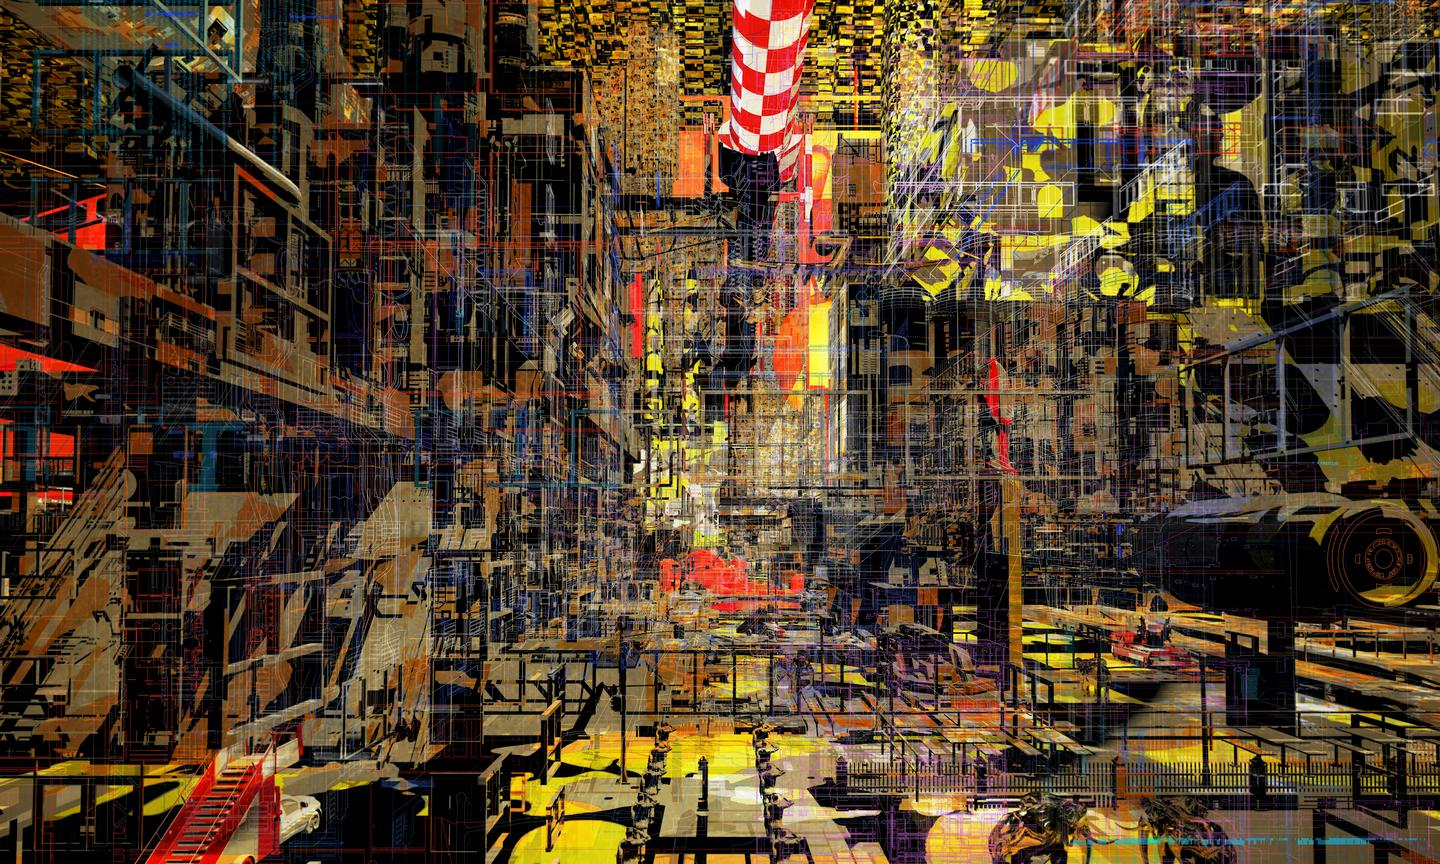 Anton Markus Pasing has won the 2019 Architecture Drawing Prize for his drawing titled City in a box: paradox memories